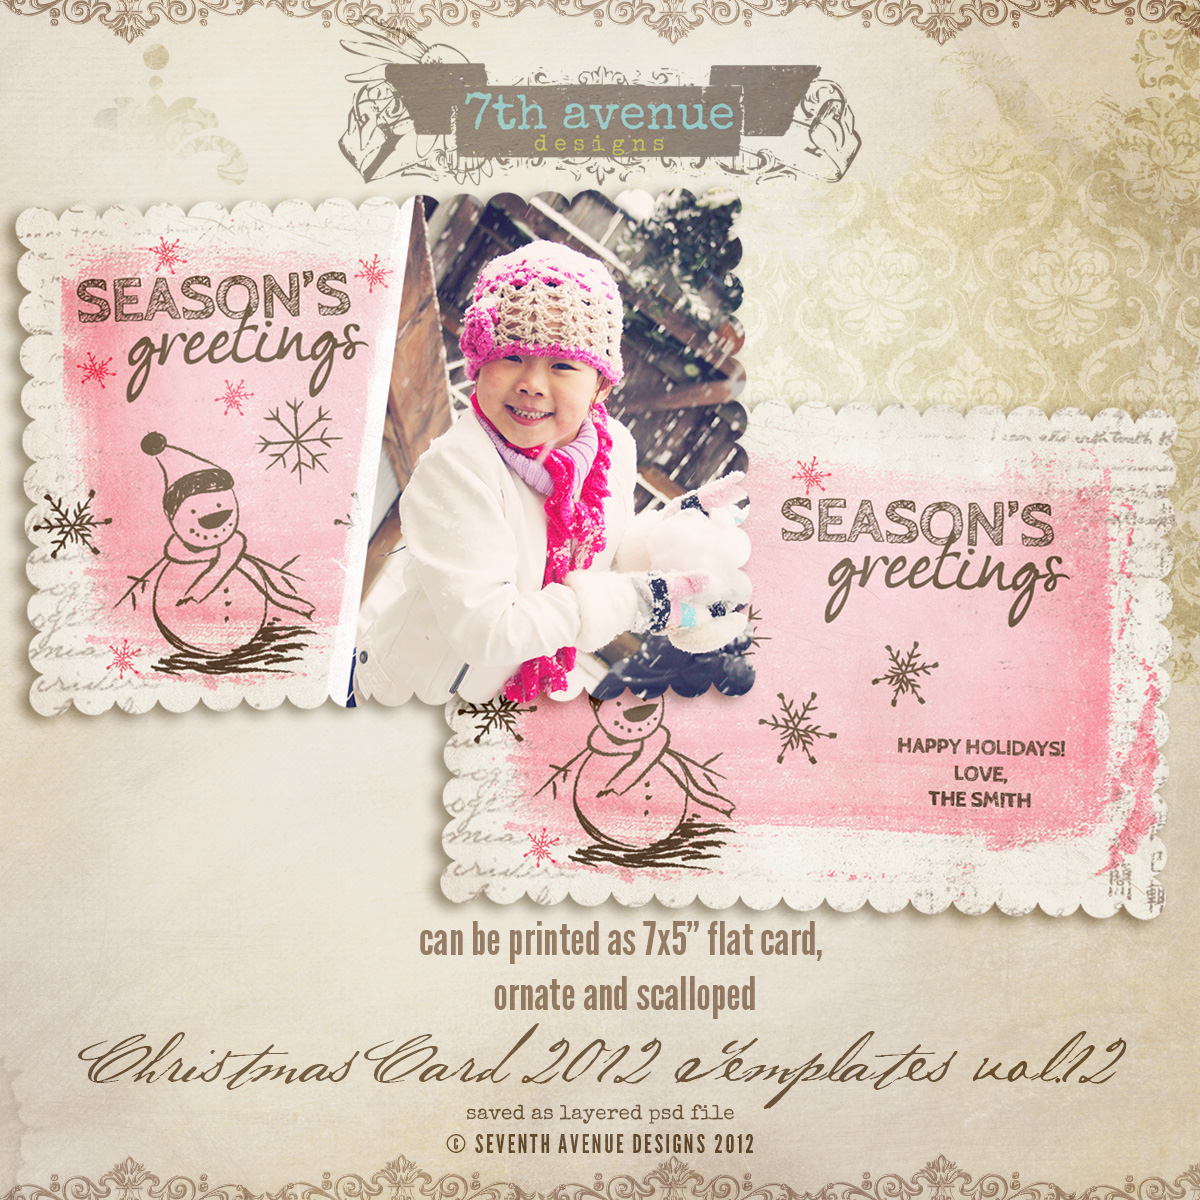 2012 Christmas Card Templates vol.12 -- 5x7 scalloped